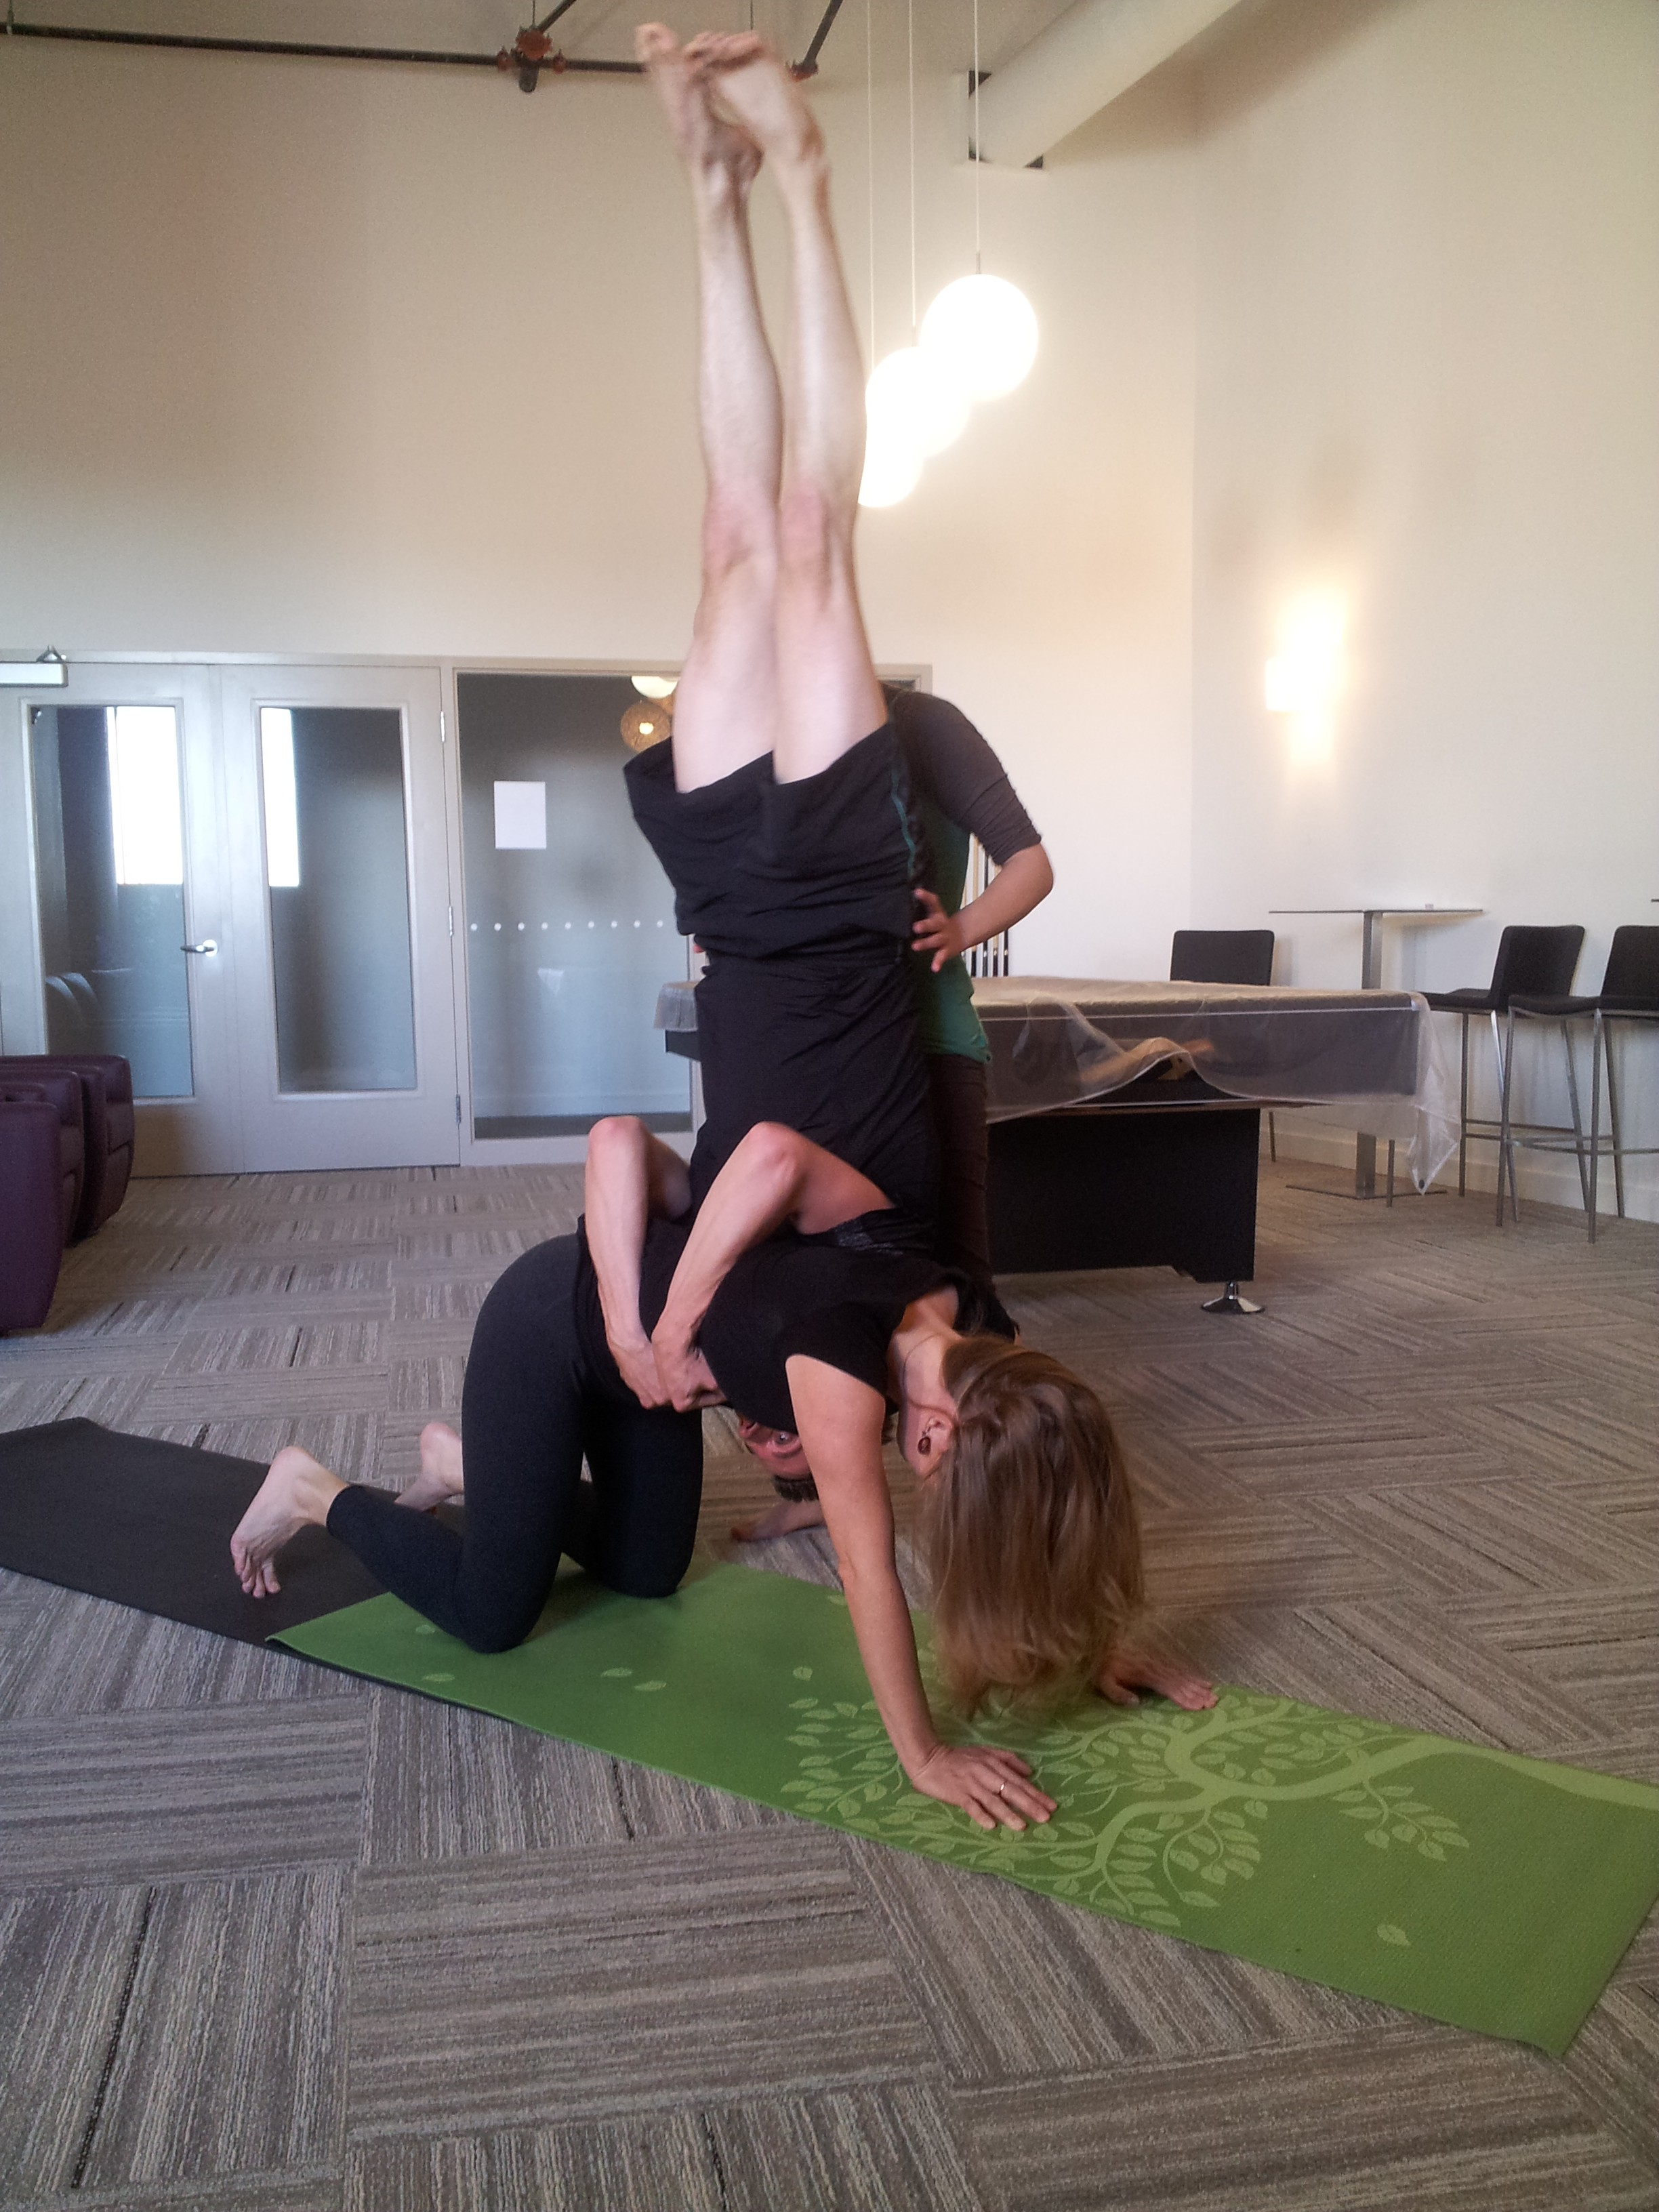 Even more acro yoga